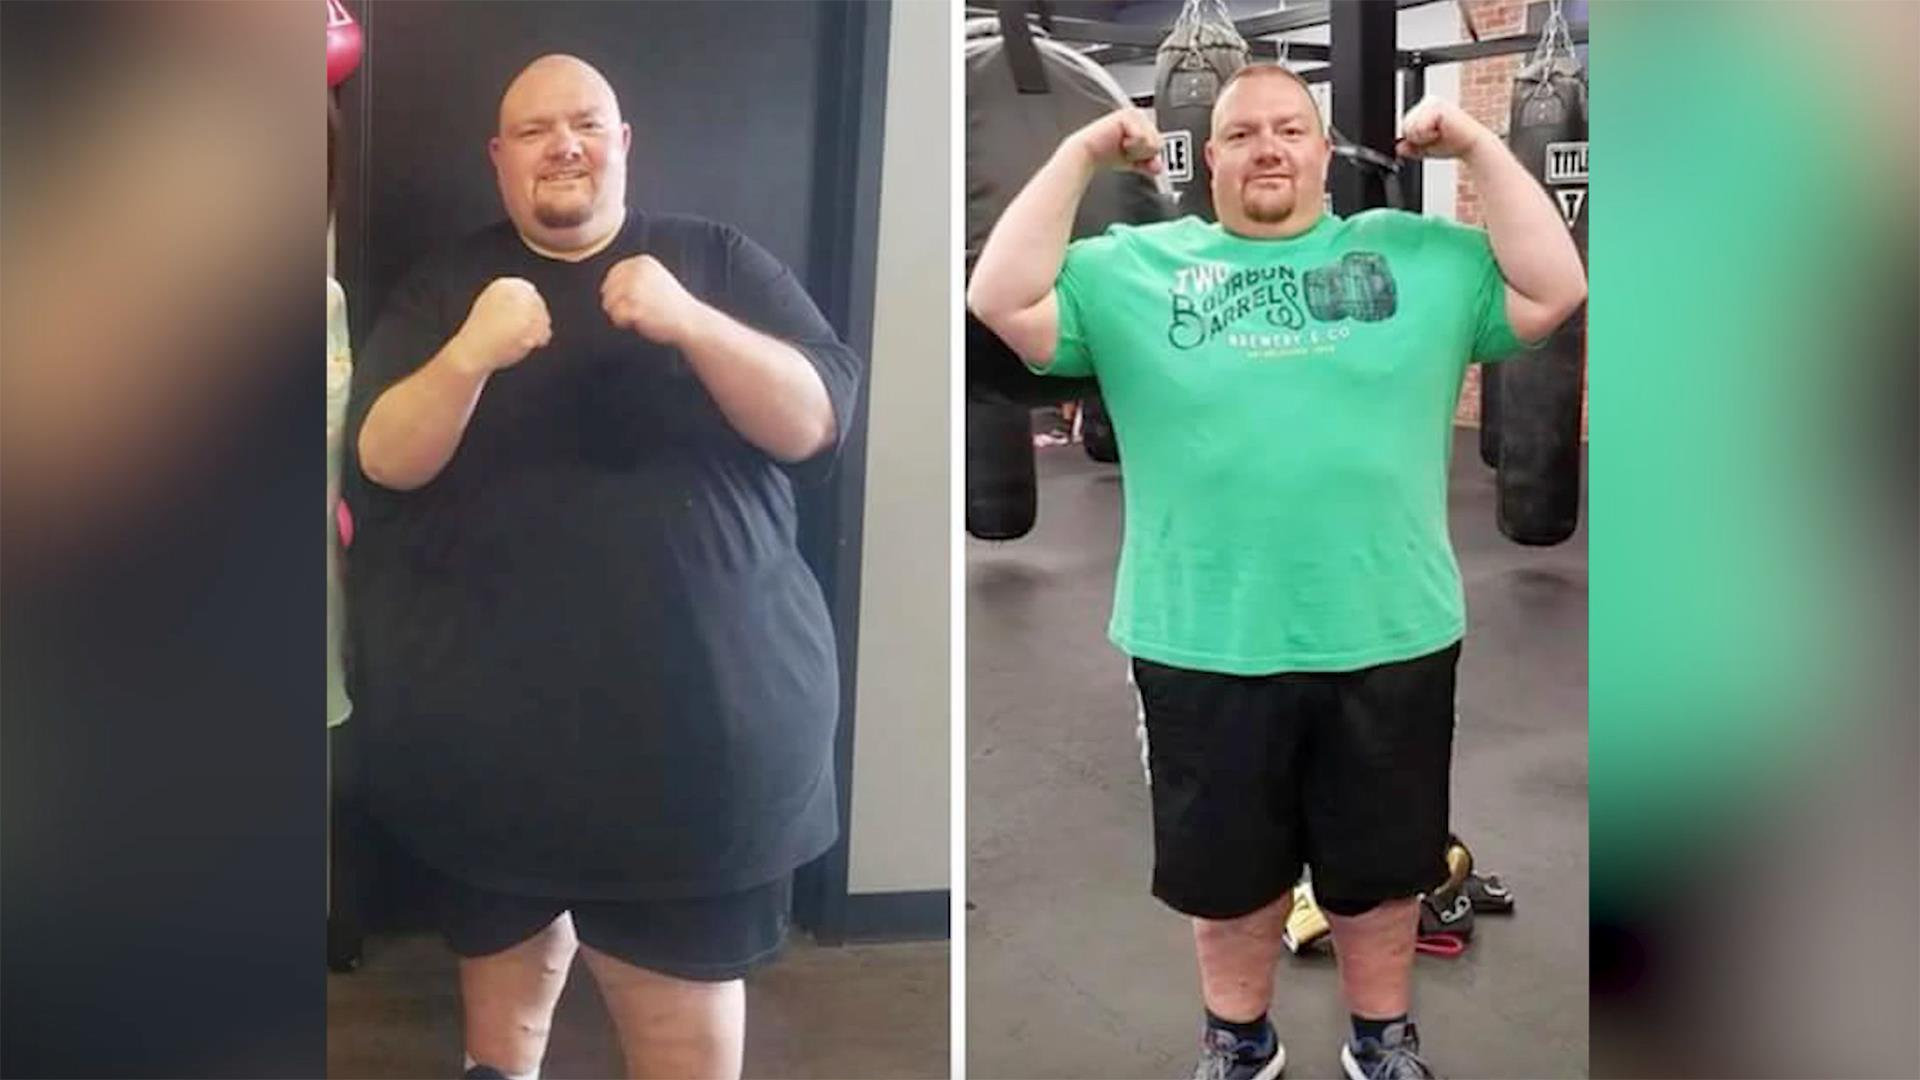 How this man lost 250 pounds in 15 months